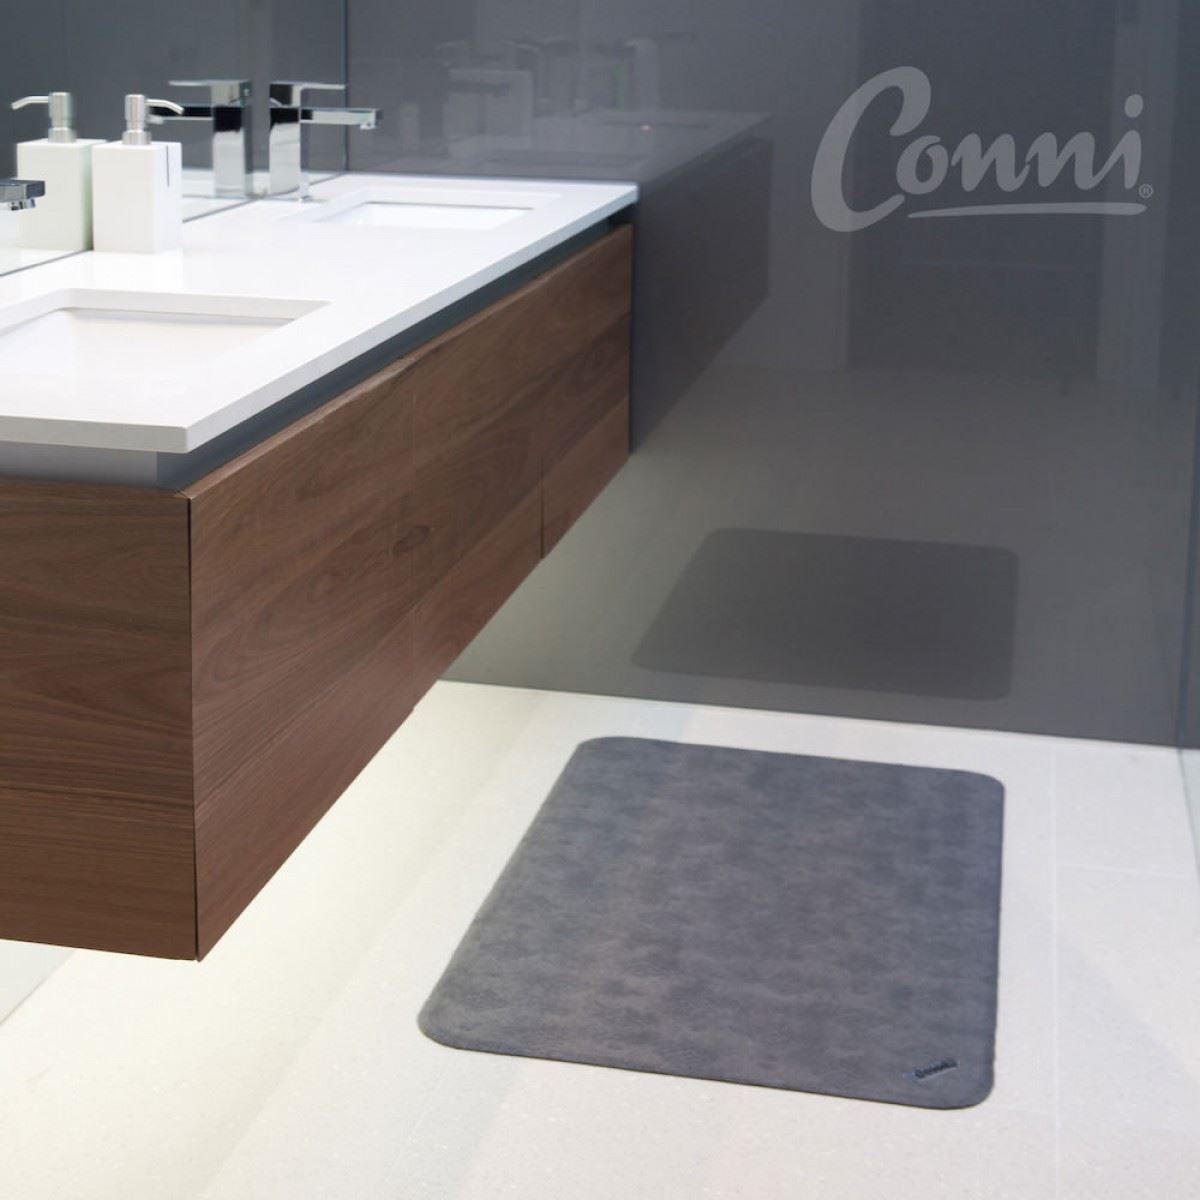 Picture of Conni Absorbent Anti Slip Floor Mat